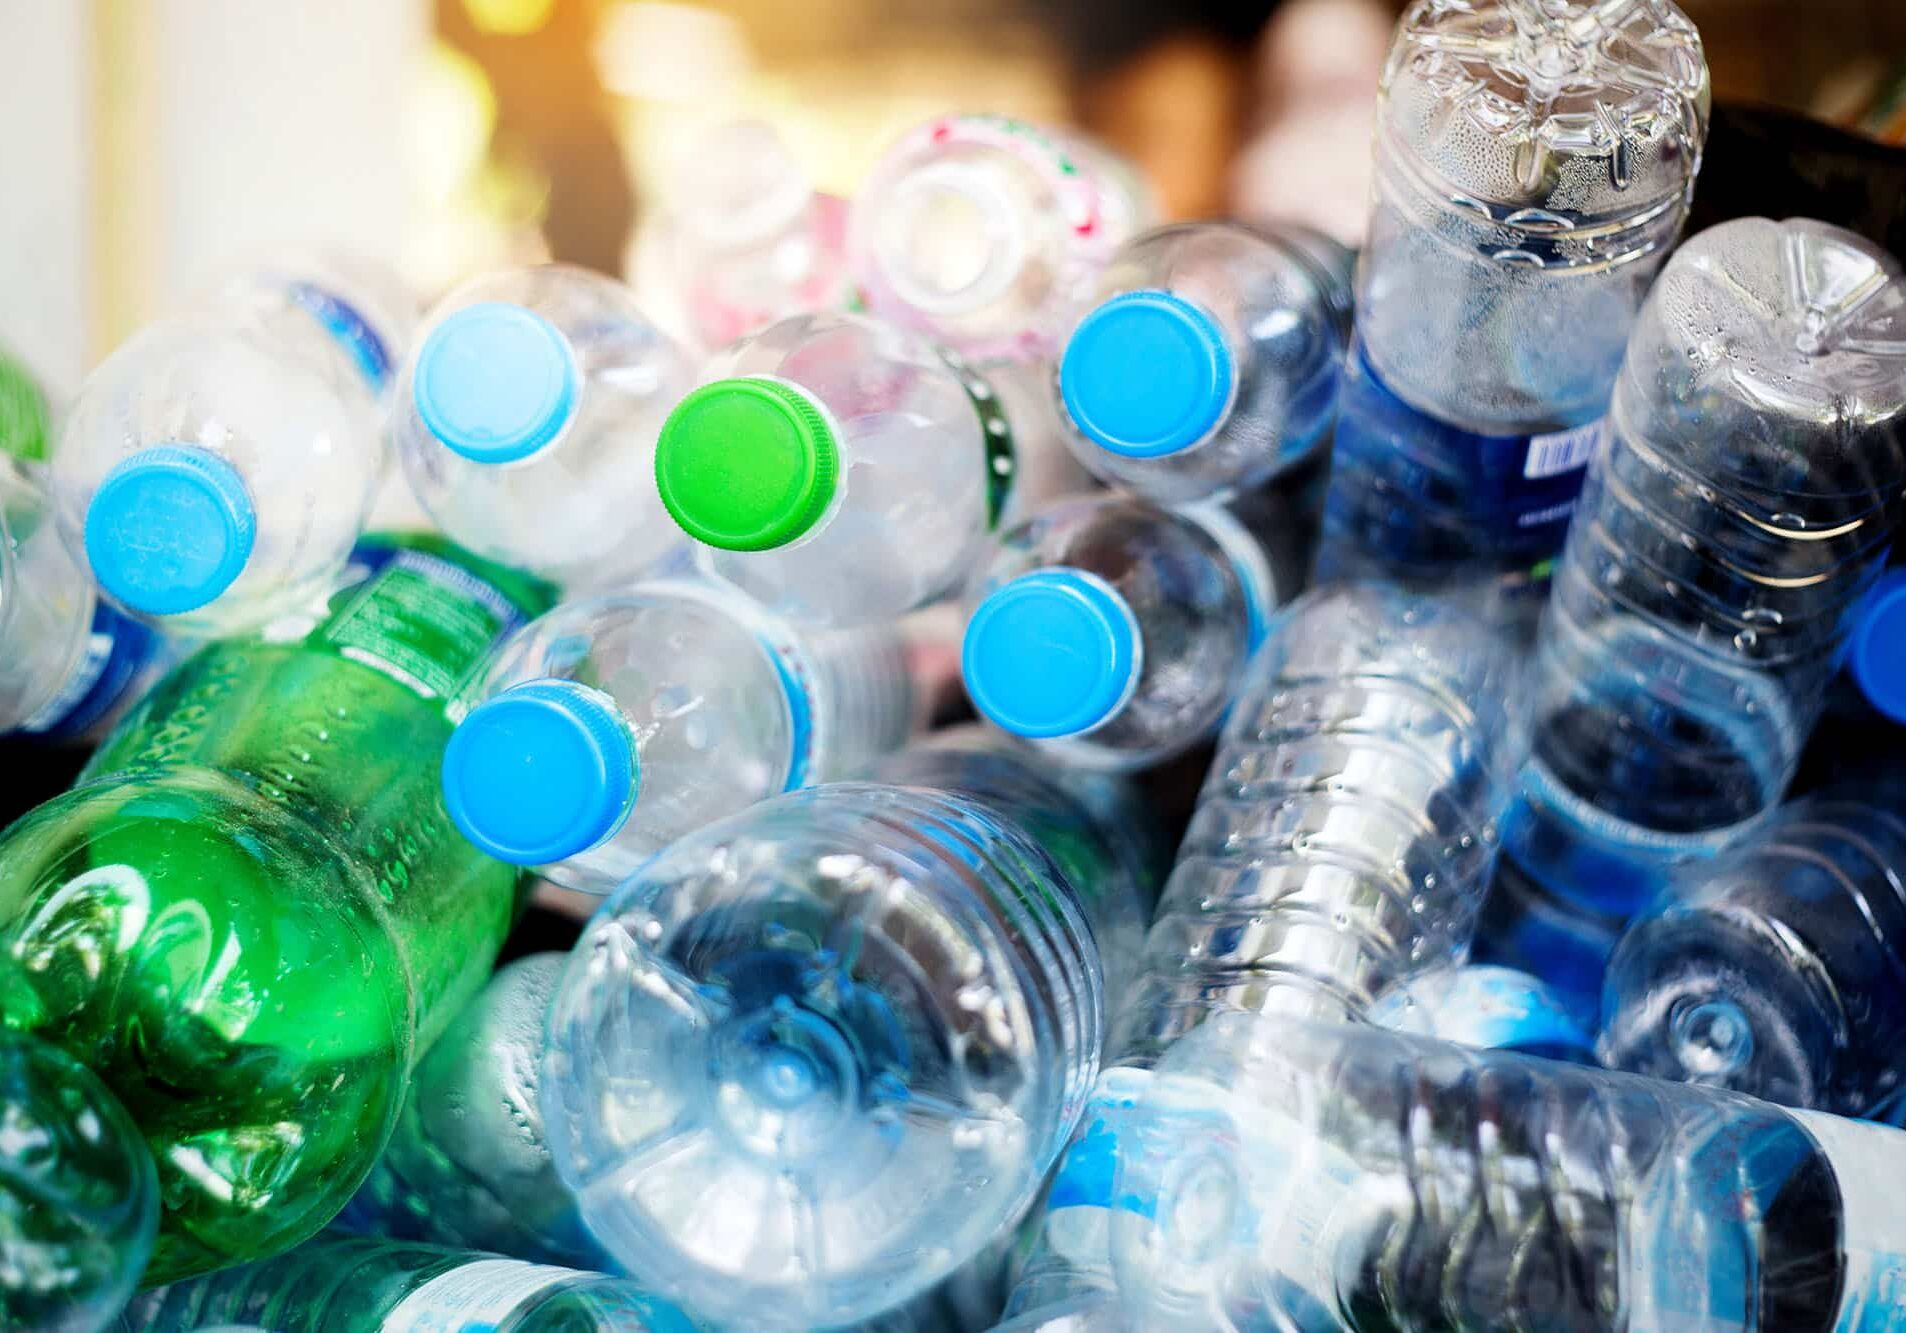 Millier's Quality Recycling Bottles recycling